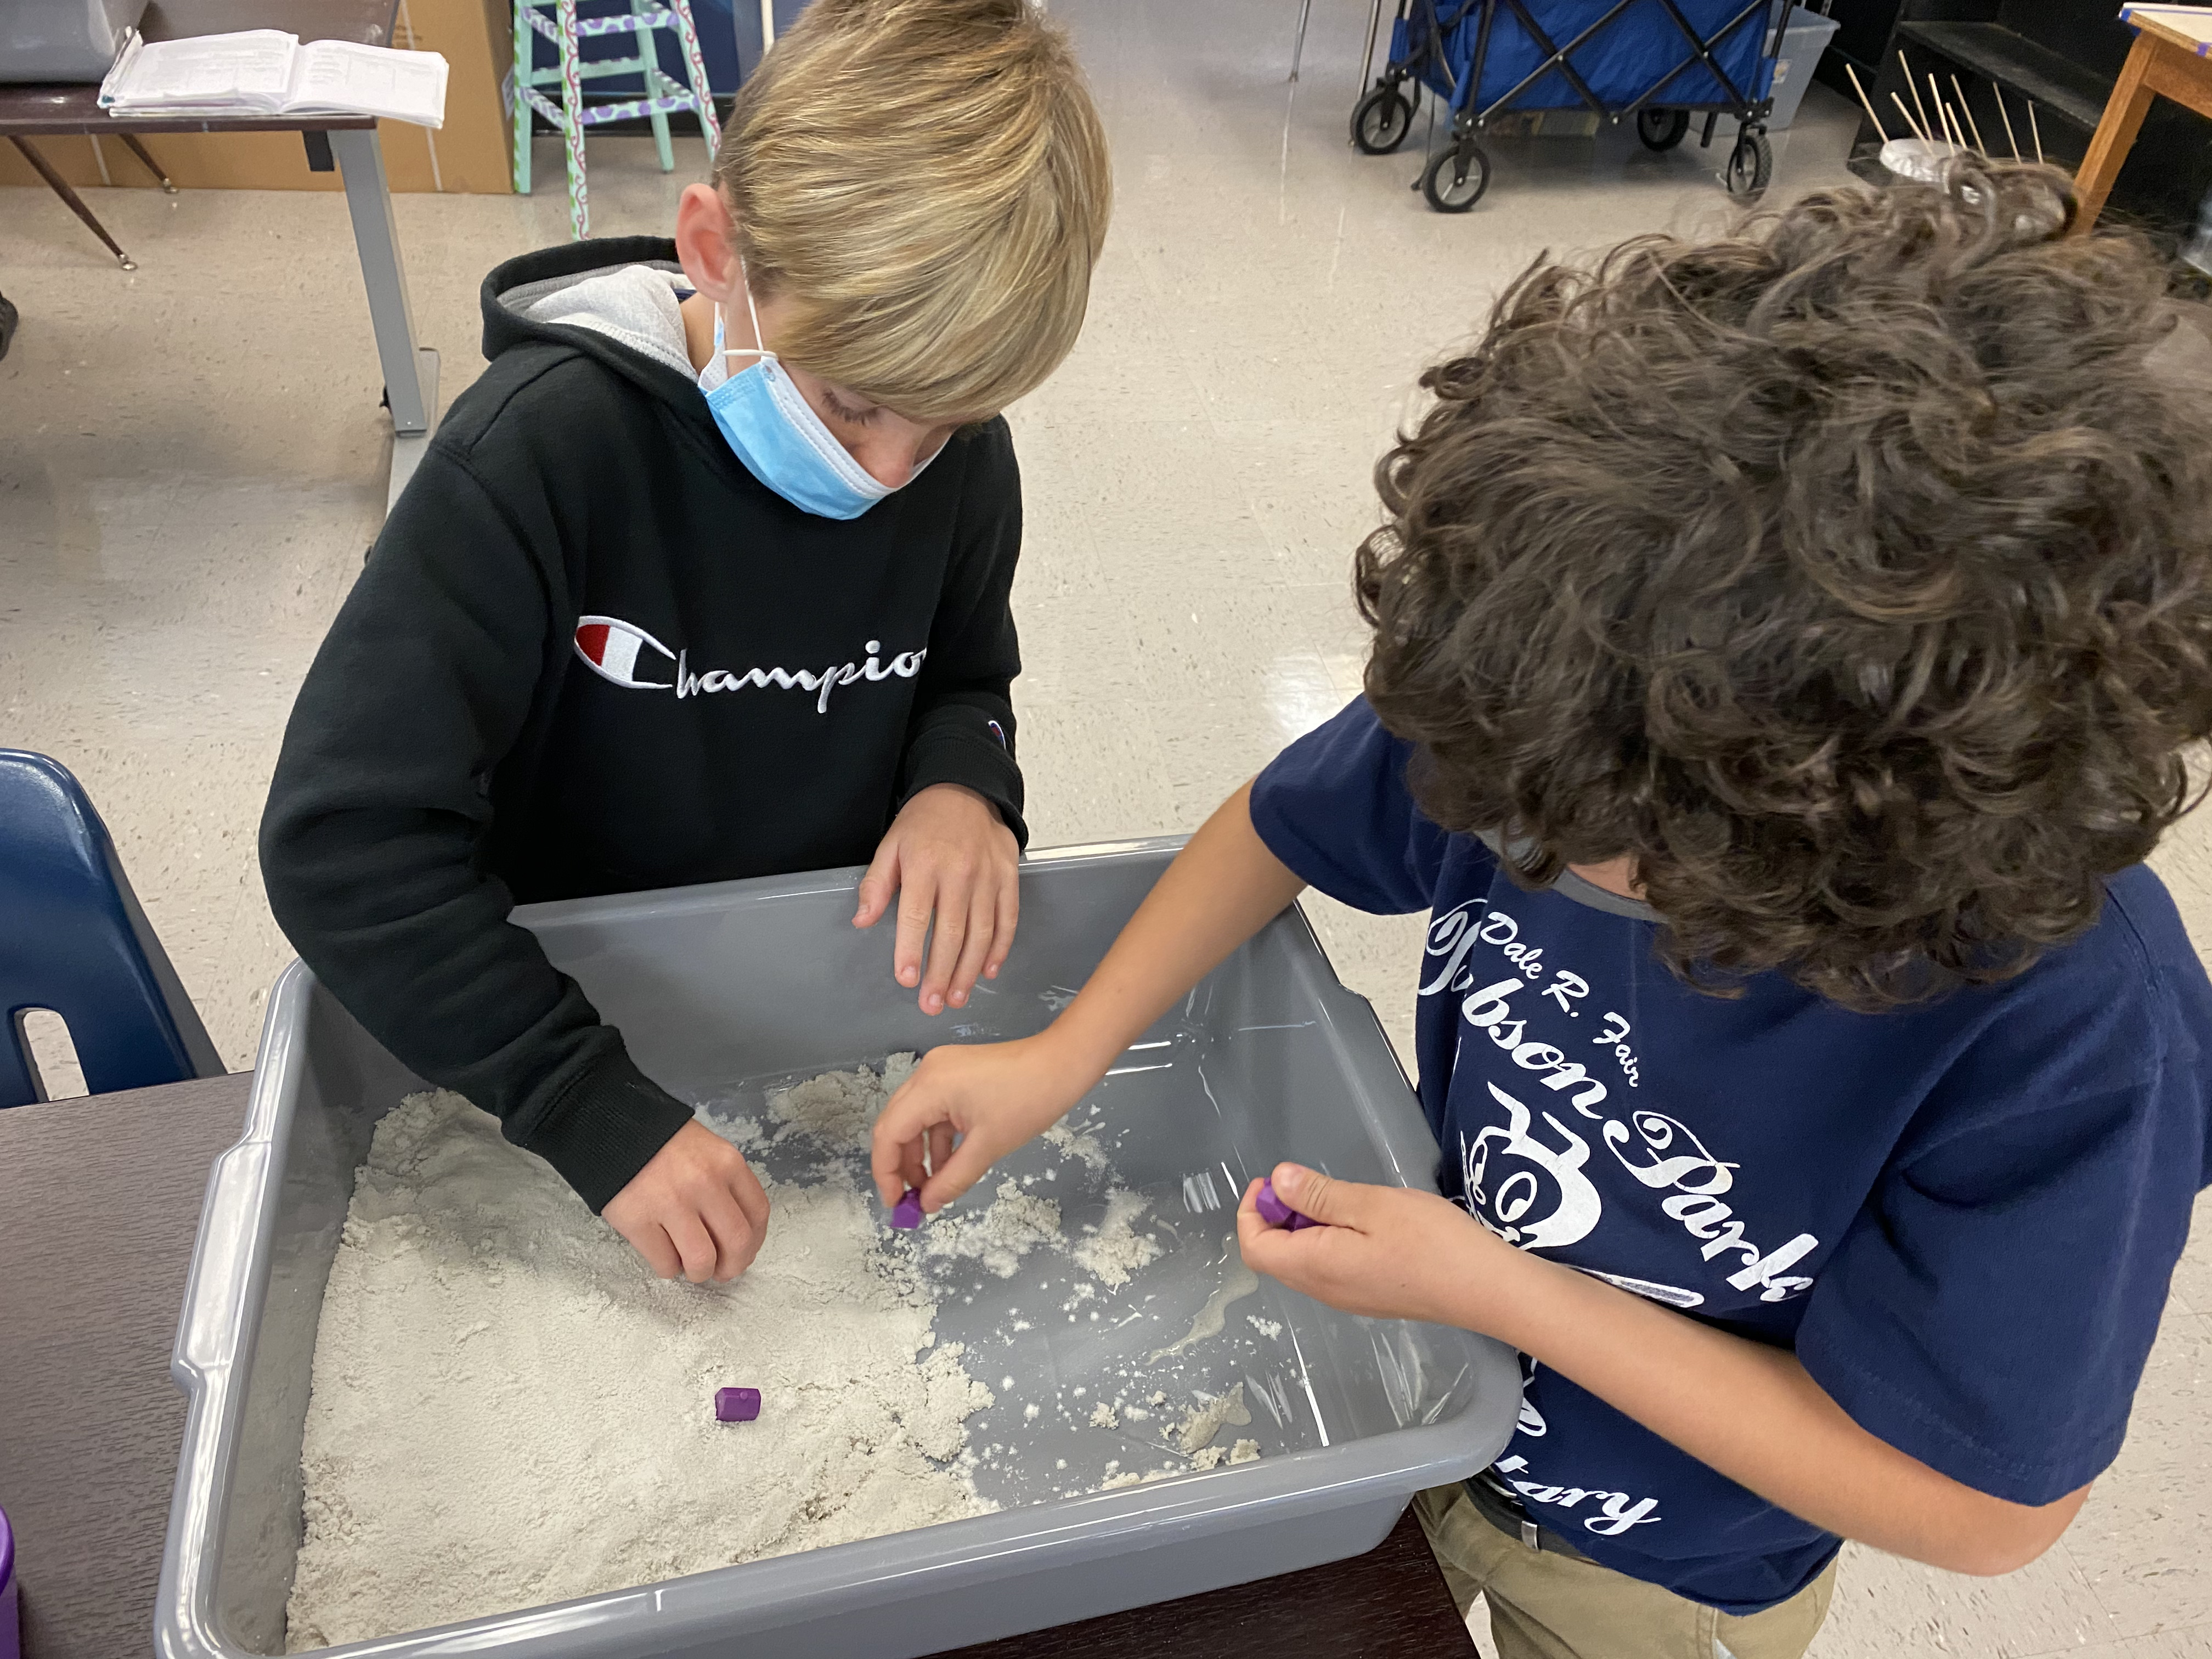 Students using sand to explore weathering and erosion